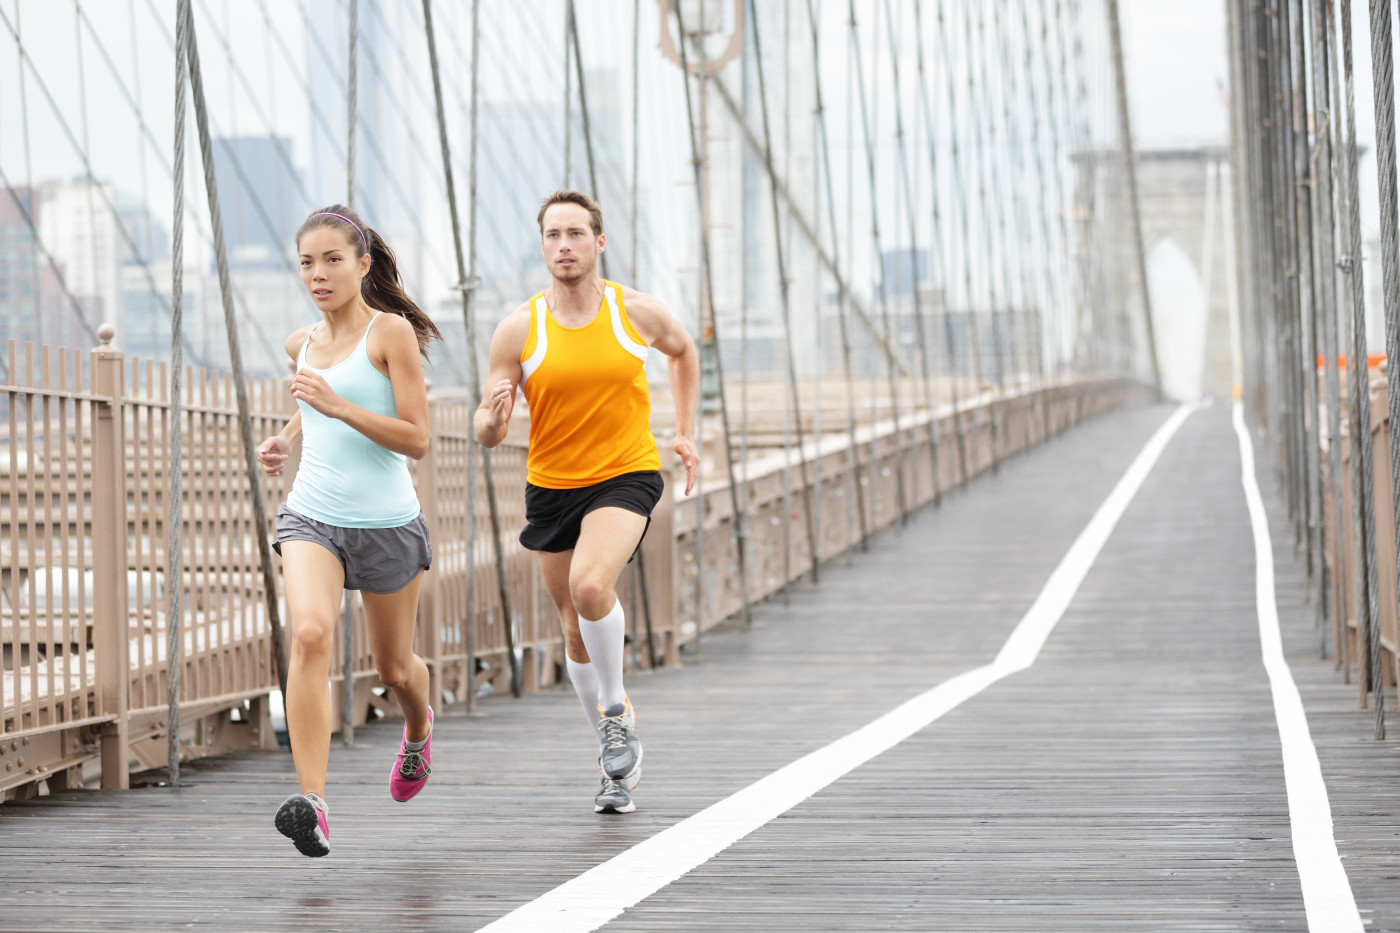 Running couple. Runners training outside. Asian woman and Caucasian man runner and fitness sport models jogging in full body showing Brooklyn Bridge, New York City, USA.